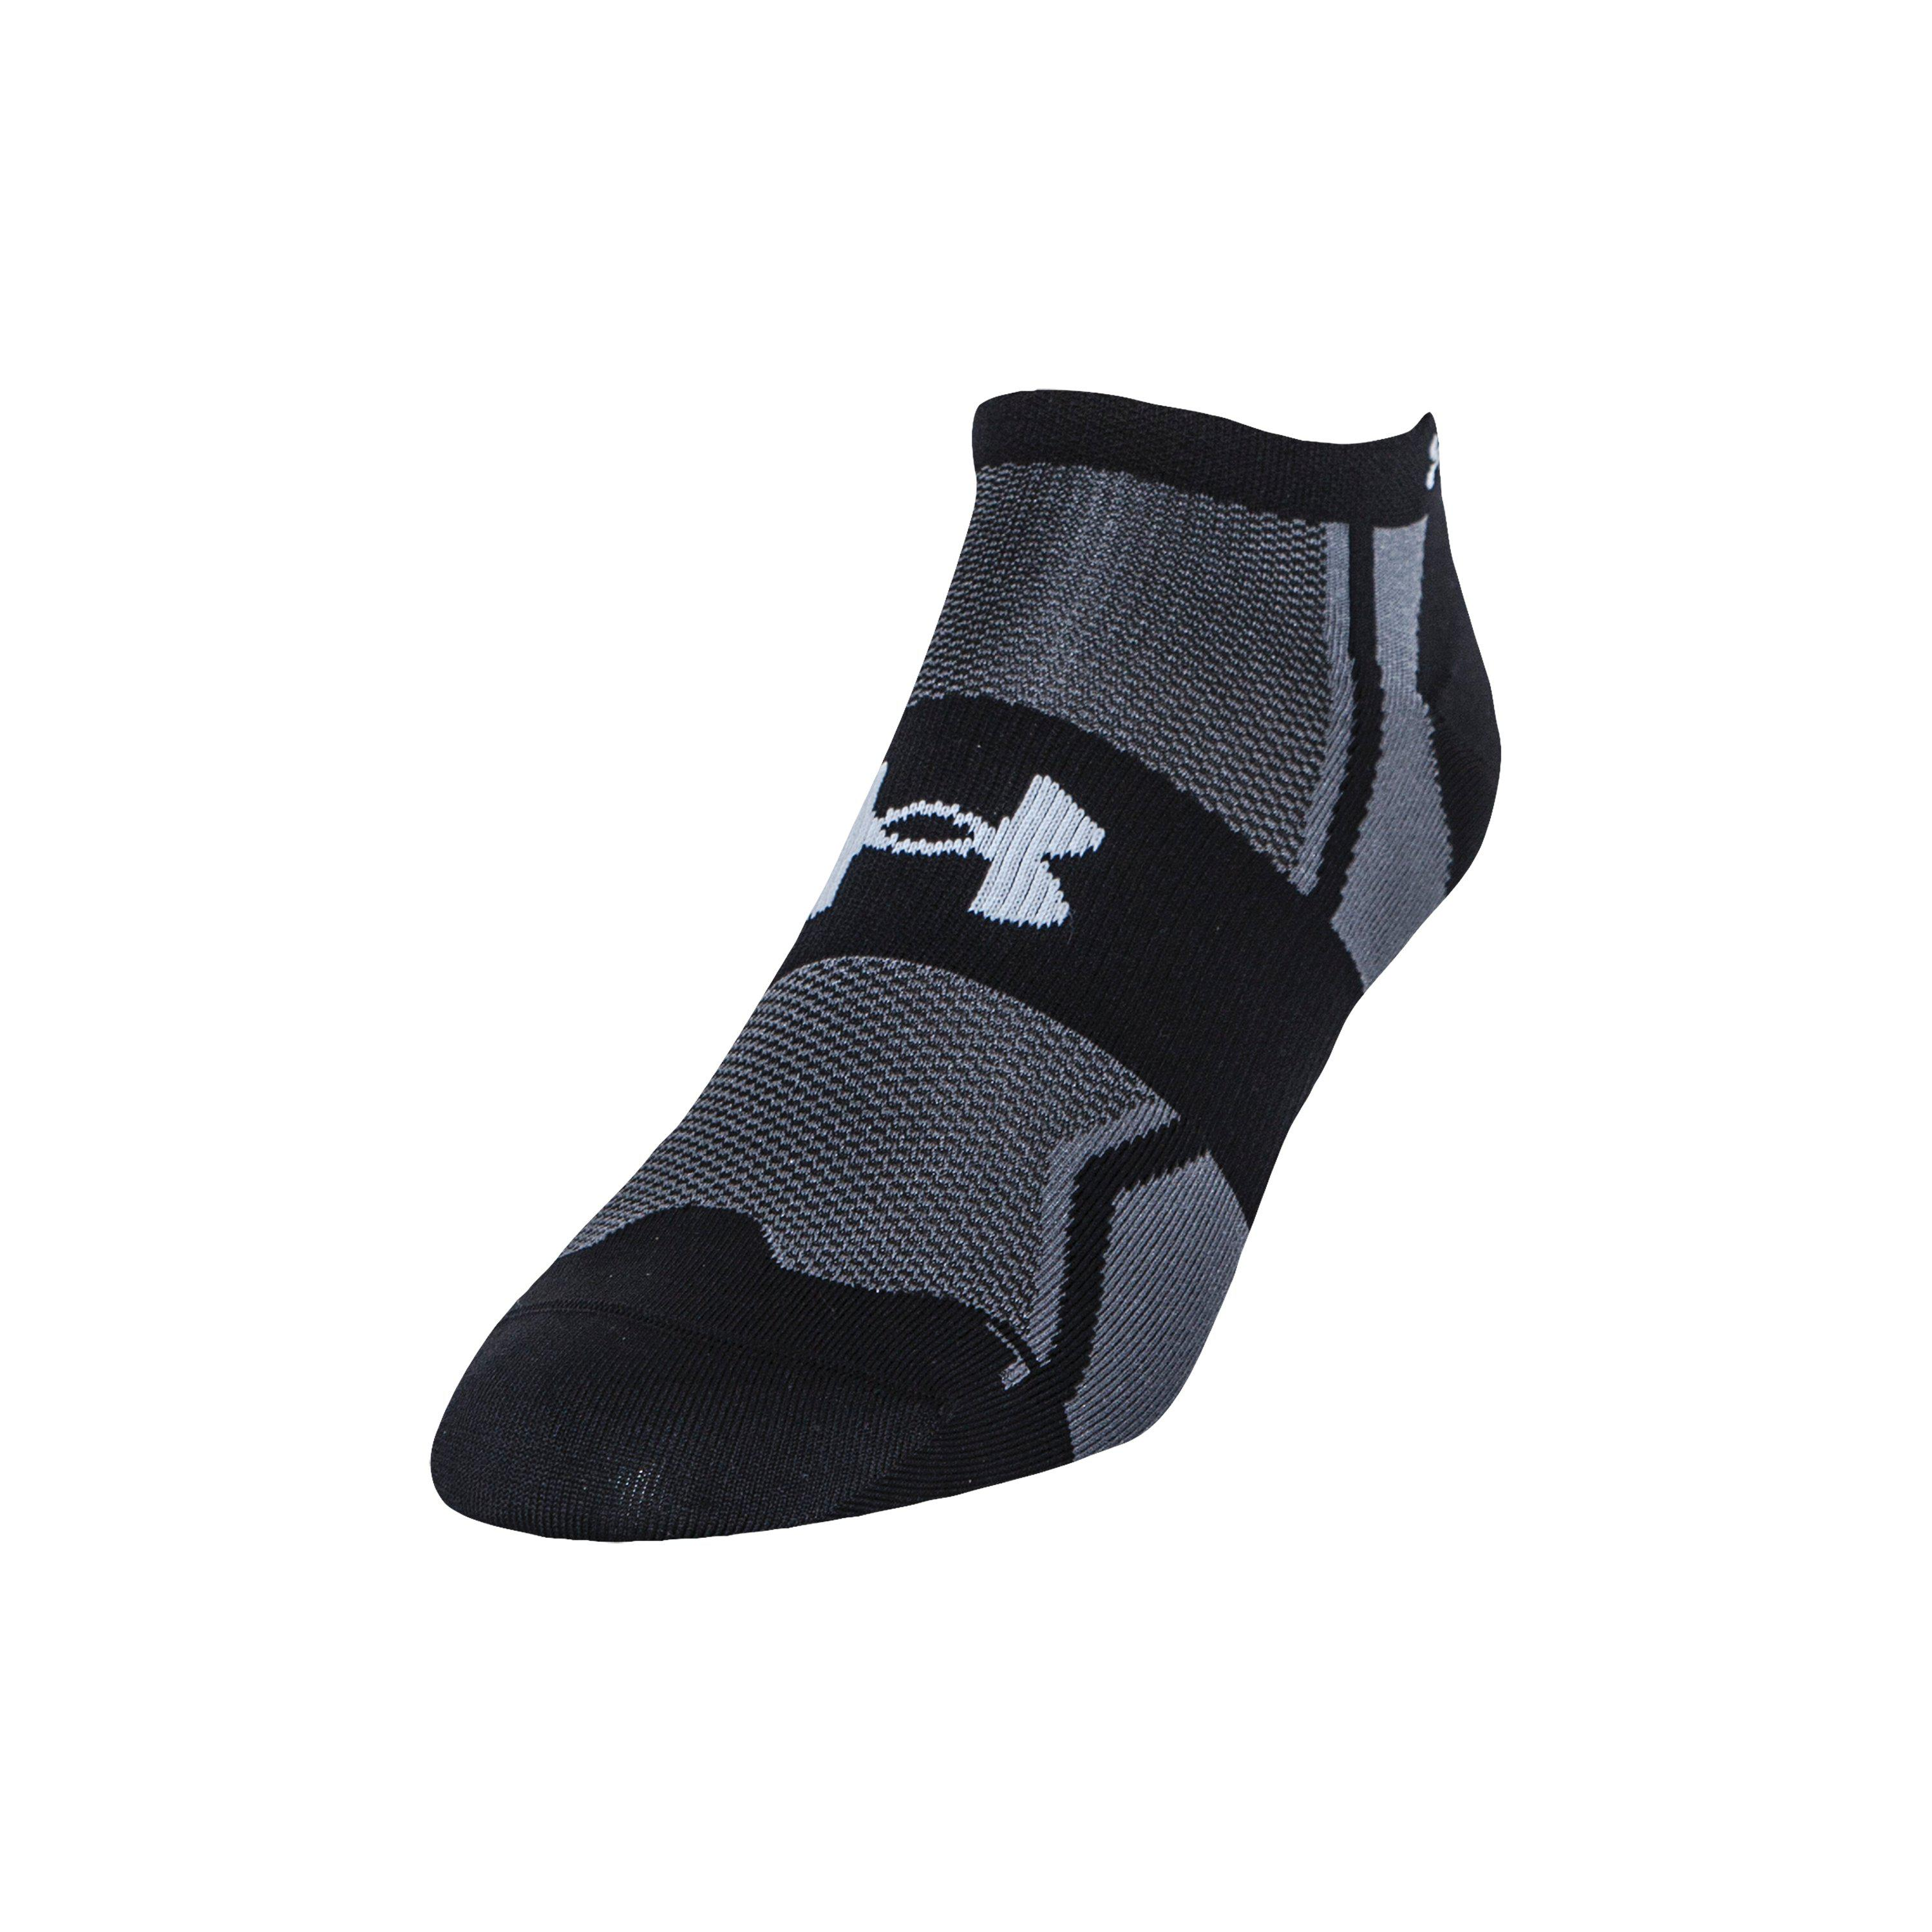 8e12c41a774 Under Armour Men's Ua Speedform® No-show Socks - 3 For $30 in Black ...